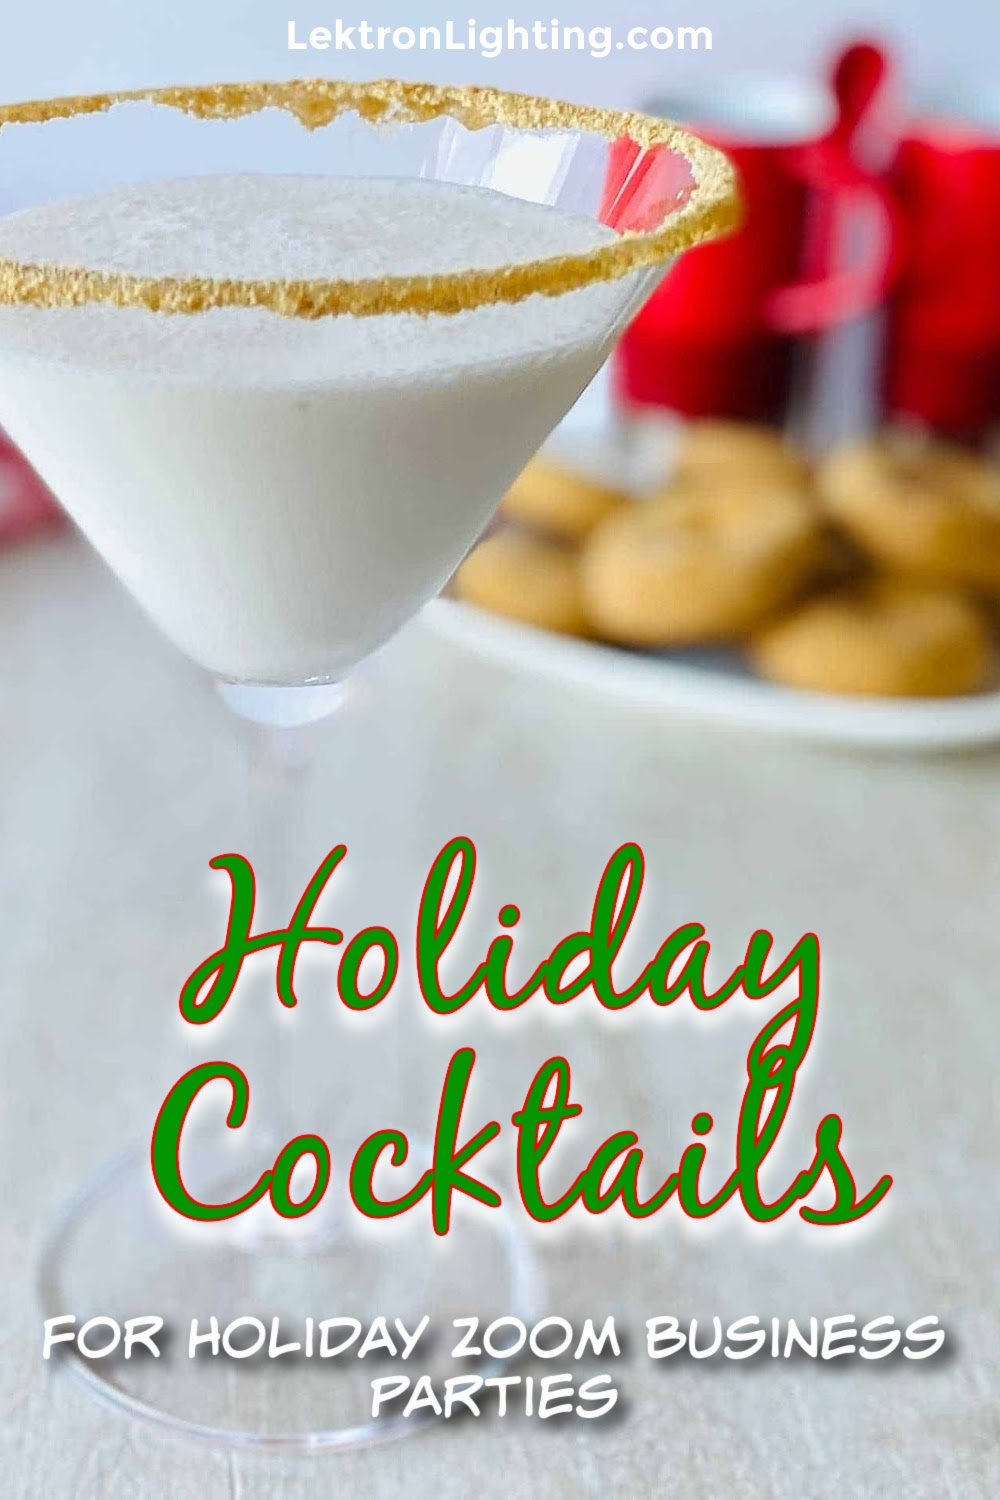 The best holiday cocktails for a zoom business party can help get everyone in the spirit of the holiday season in the best ways possible.